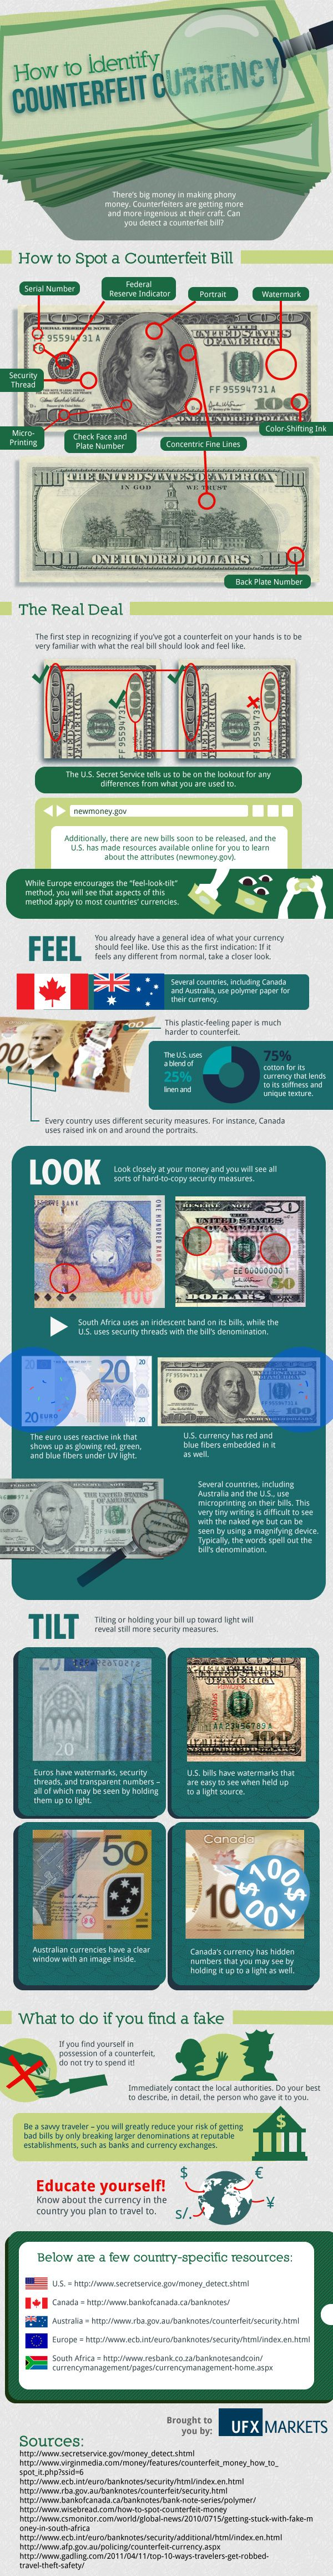 How To Indentify Counterfeit Currency [INFOGRAPHIC]